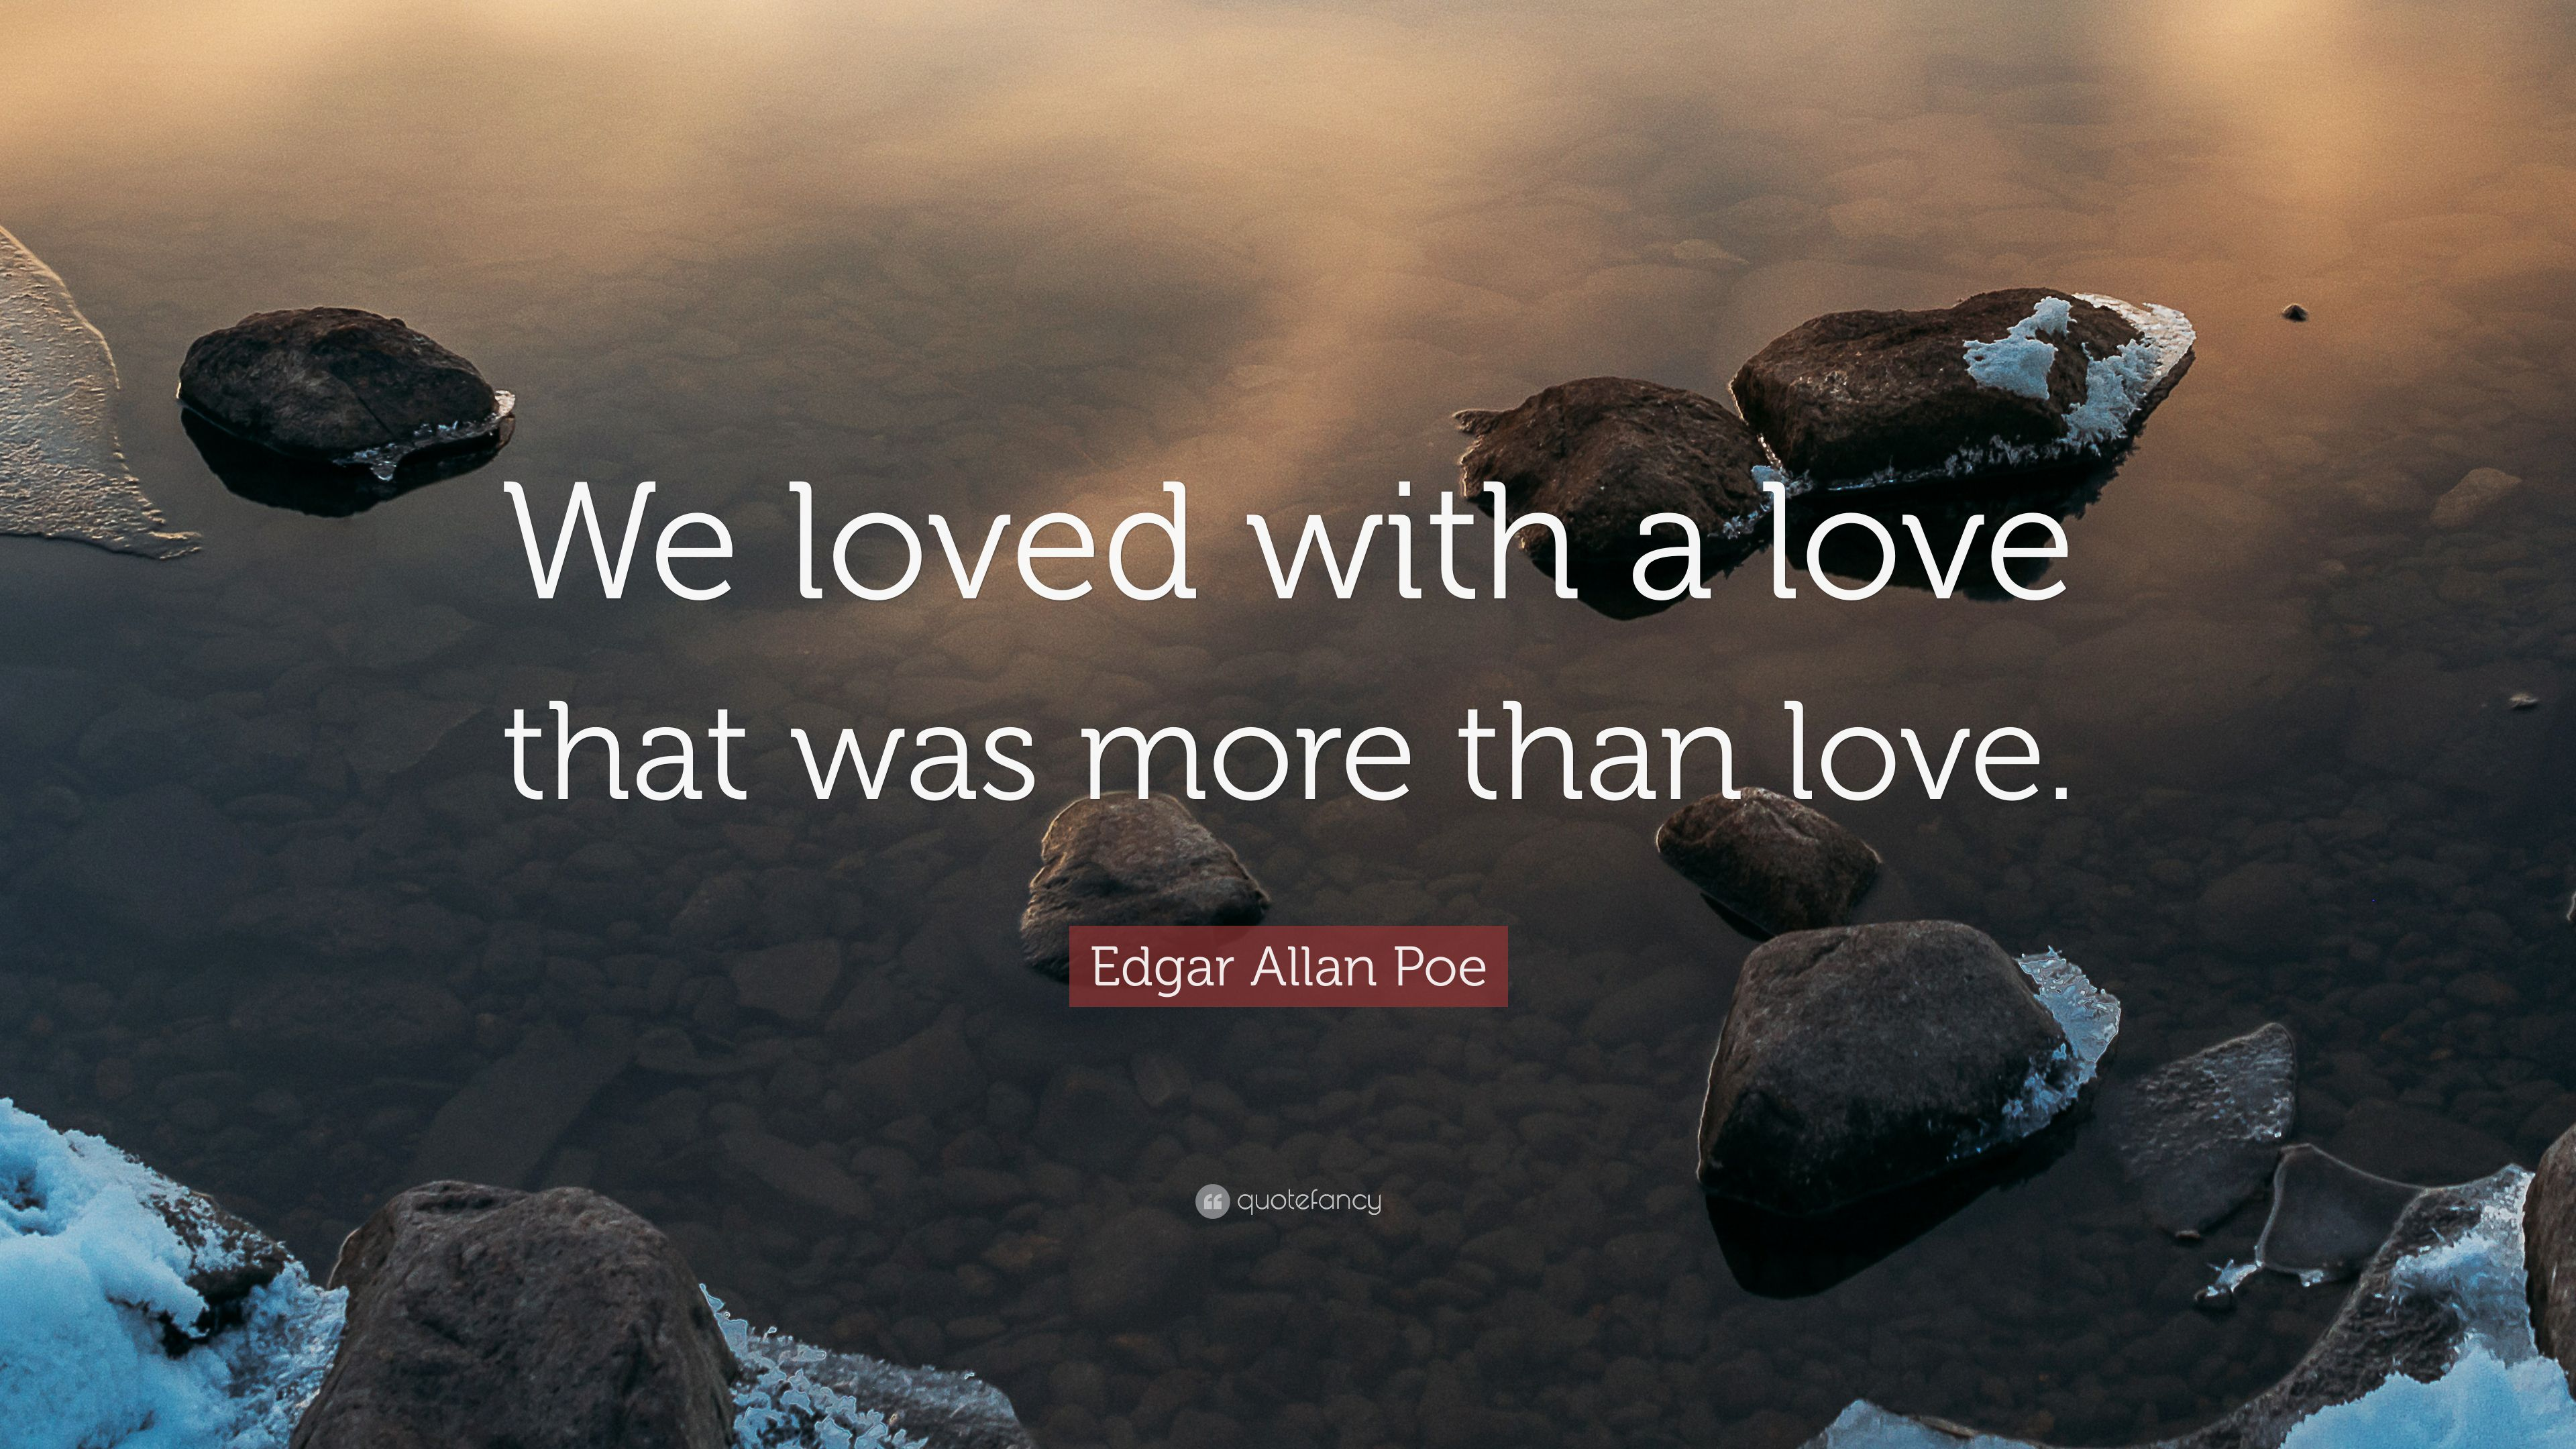 Edgar Allan Poe Quote We Loved With A Love That Was More Than Love